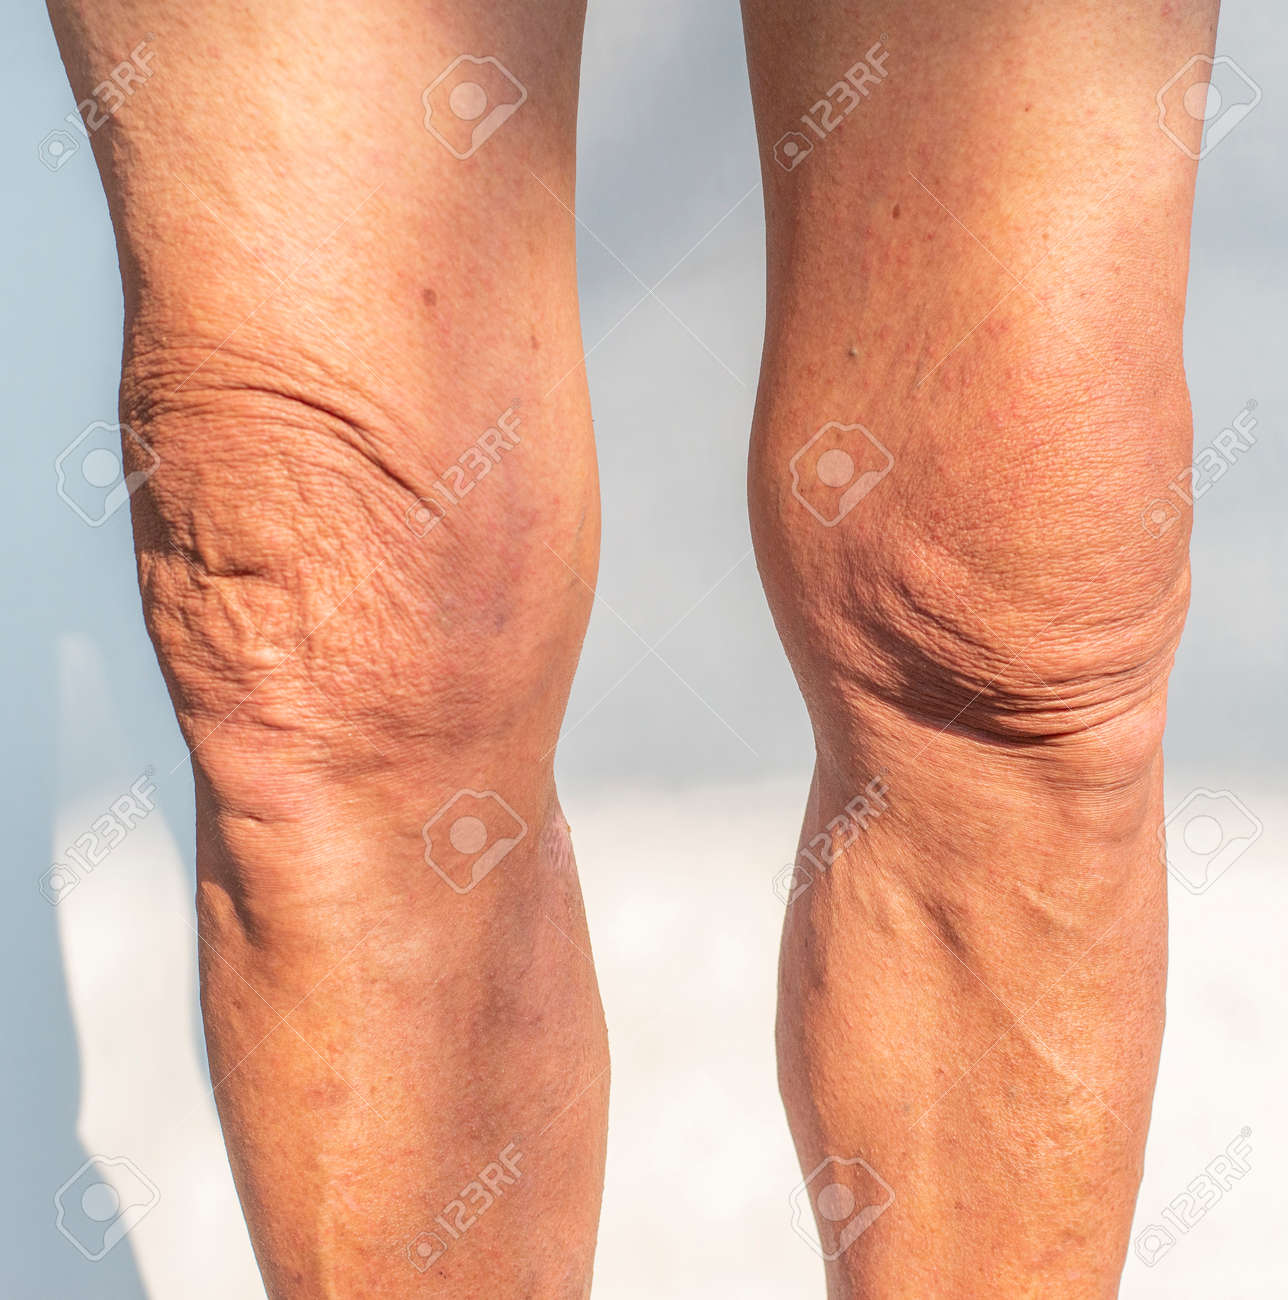 Legs and knees picture of an elderly person with health problems - 169651790